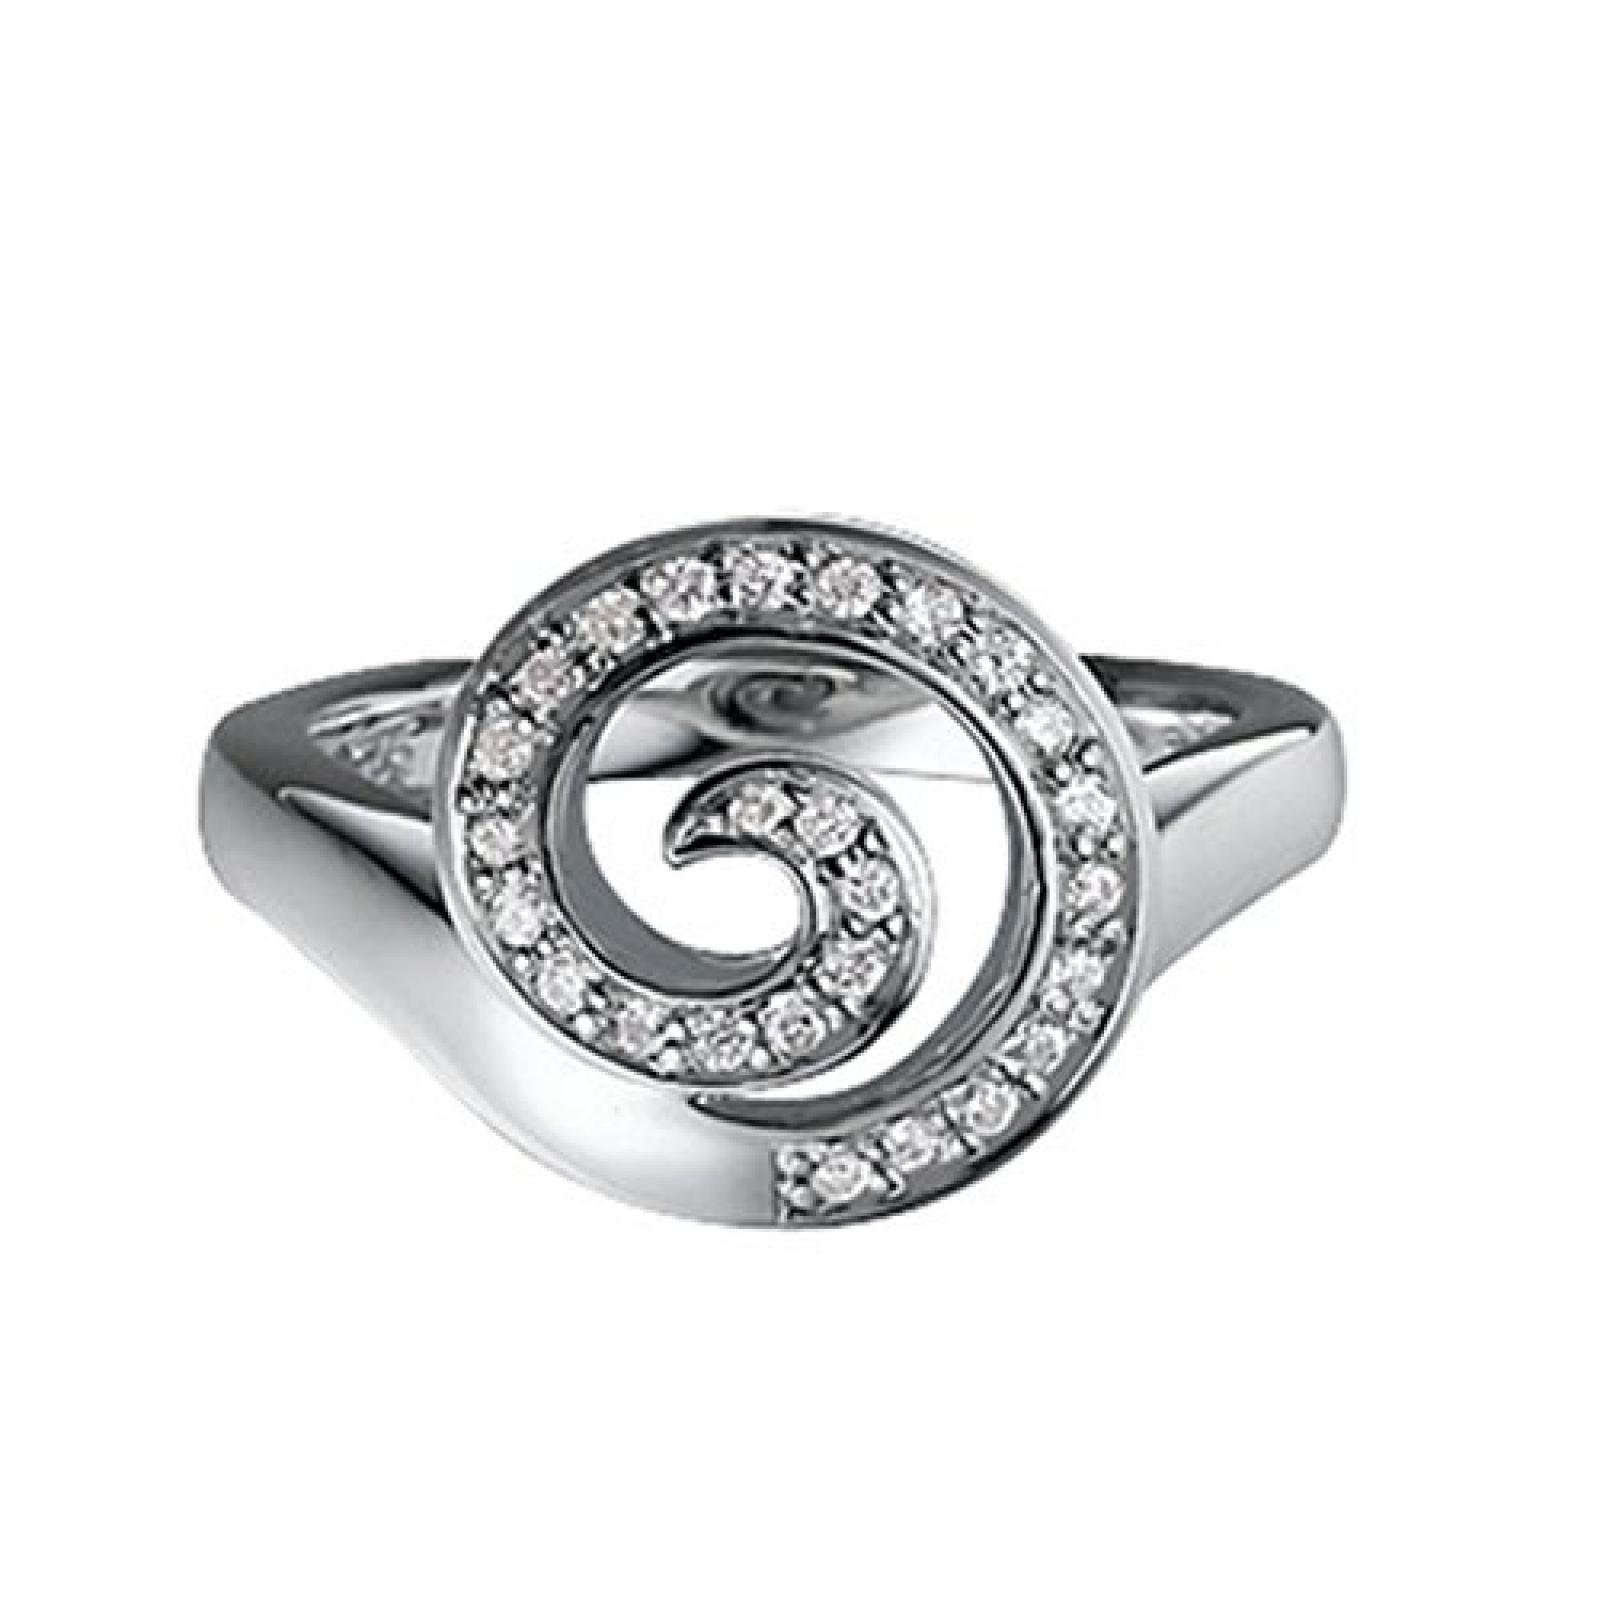 Pierre Cardin Damen-Ring Fontaine Sterling-Silber 925 41840929